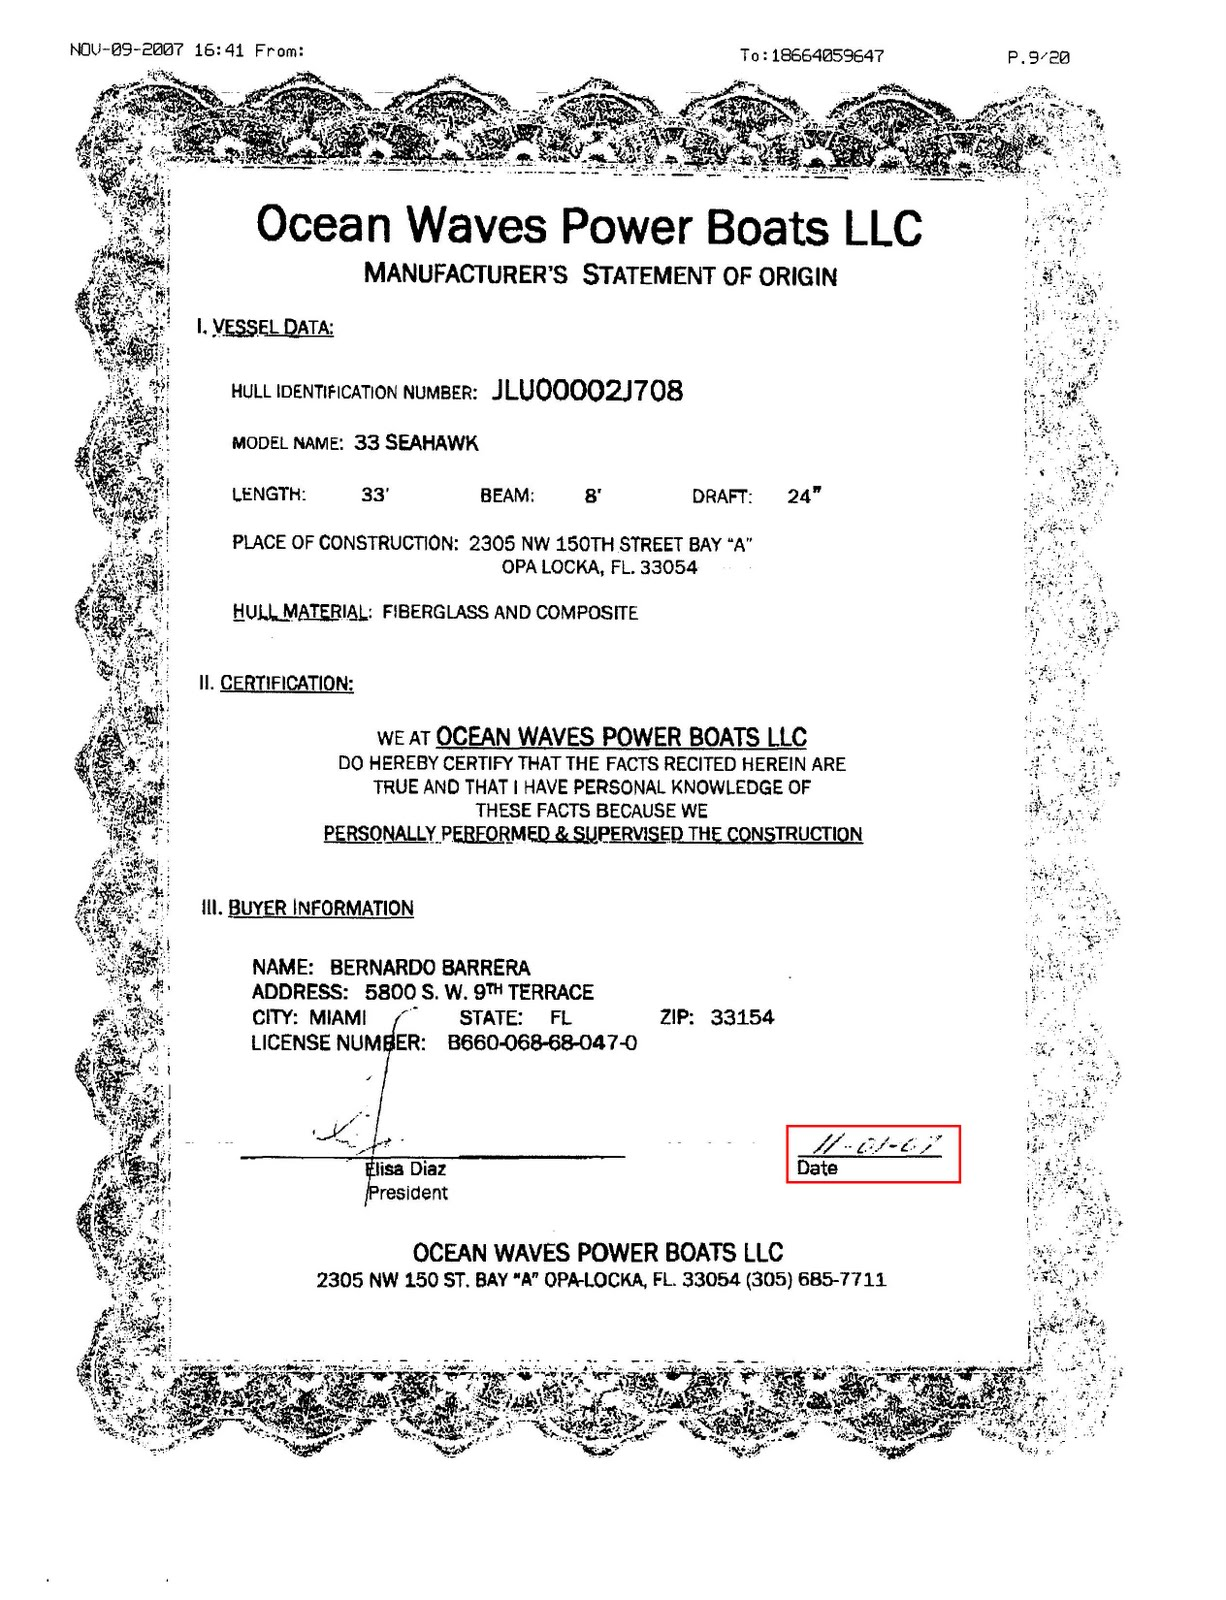 Let's start with the manufacturers statement of origin for the boat in